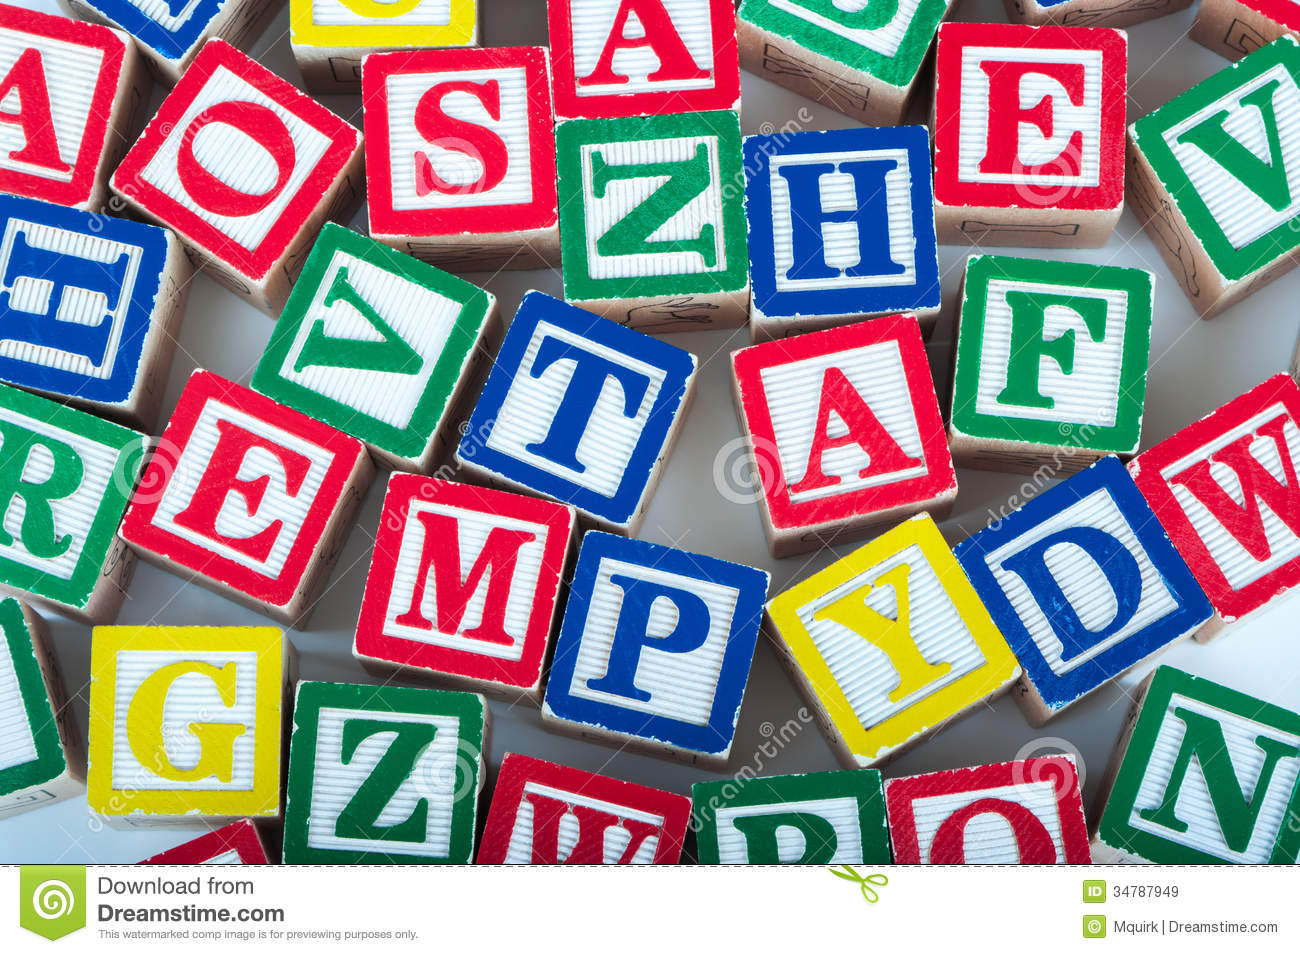 Toy Alphabet Blocks Royalty Free Stock Images - Image ...